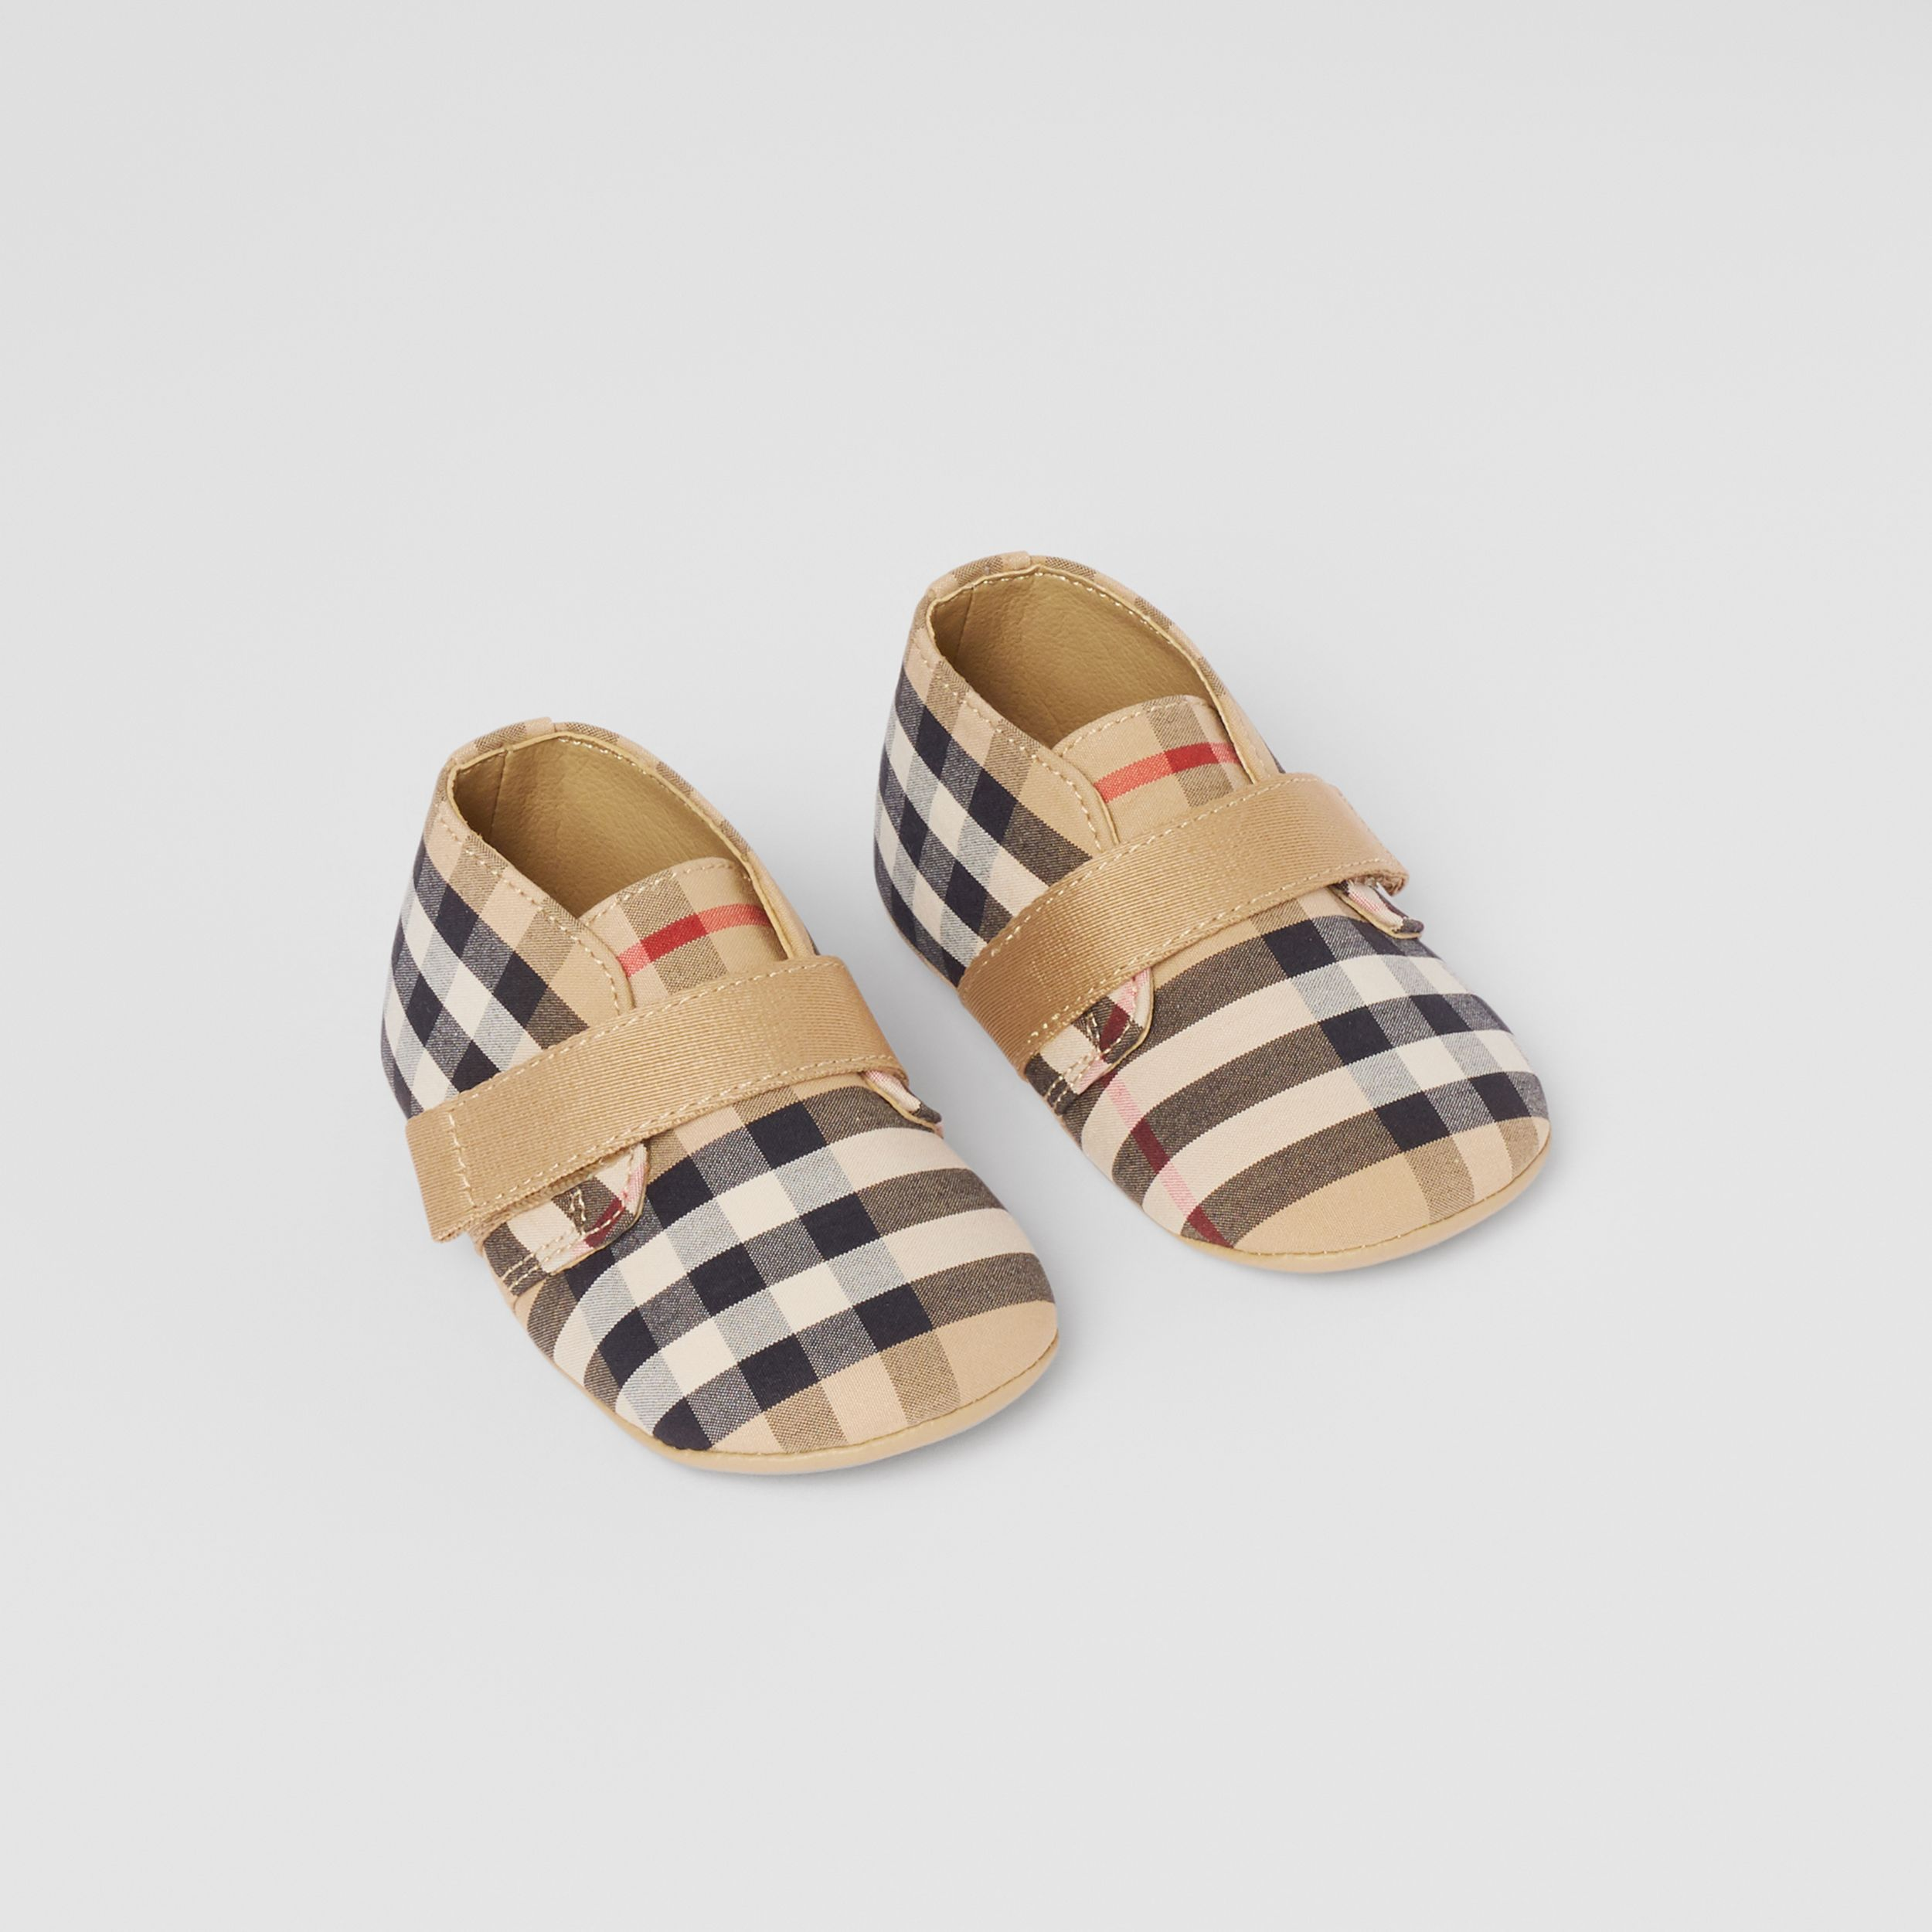 Vintage Check Cotton Booties in Archive Beige - Children | Burberry - 1